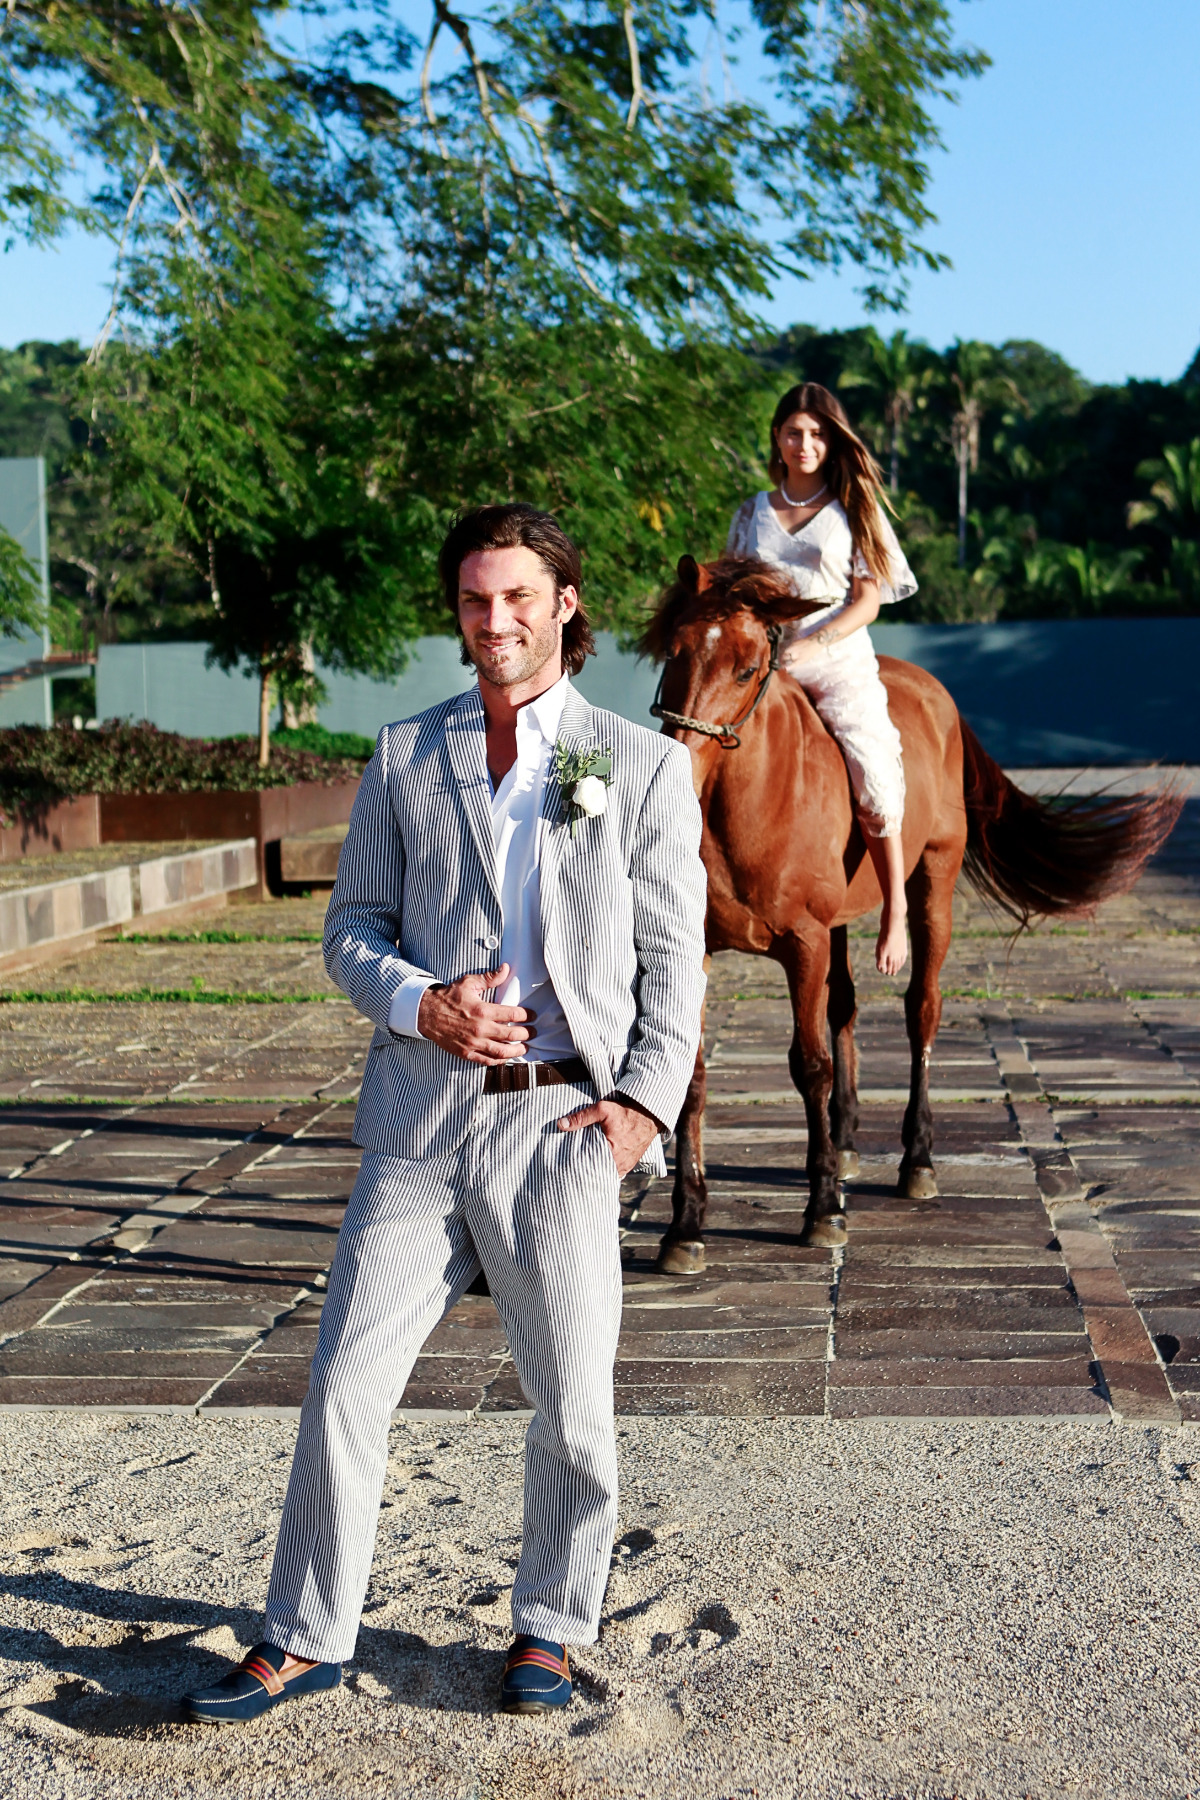 Groom awaits for his bride as she arrives on horseback